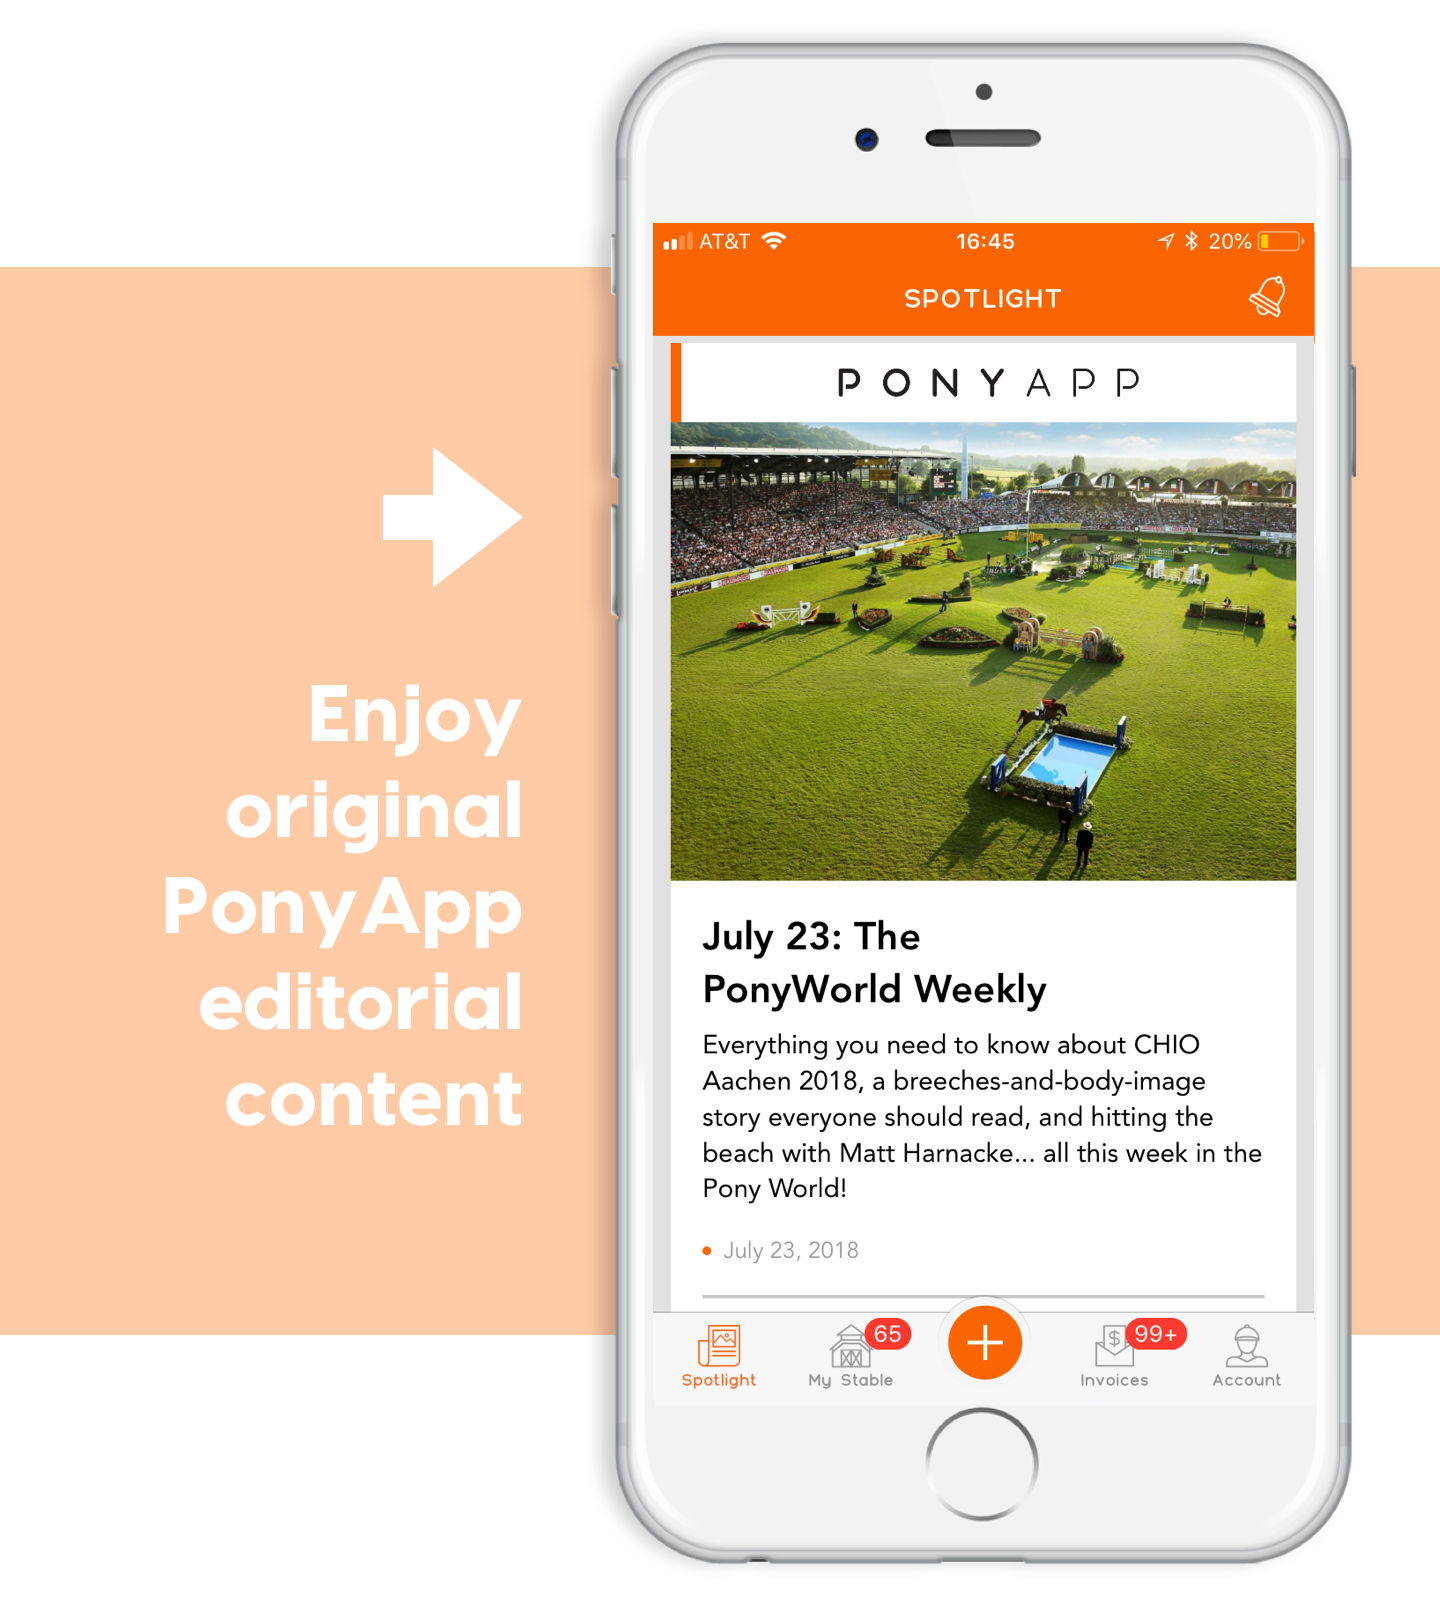 ponyapp spotlight original articles editorials